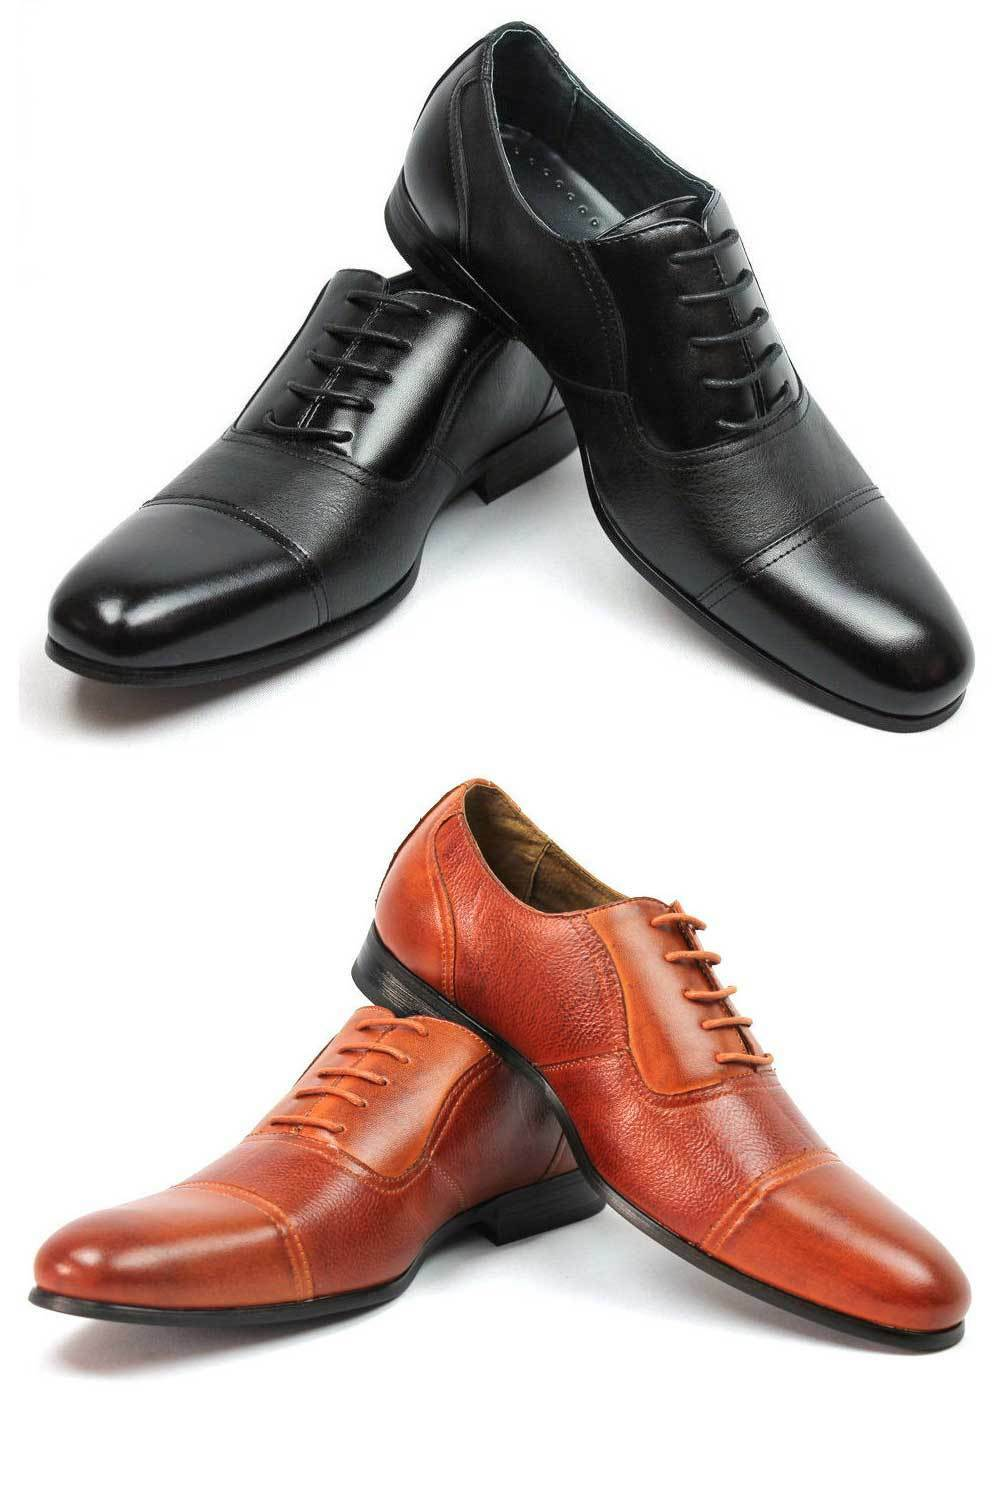 New Men's Ferro Aldo Dress Shoes Cap Toe Lace Up Oxfords Leather Lining 19339